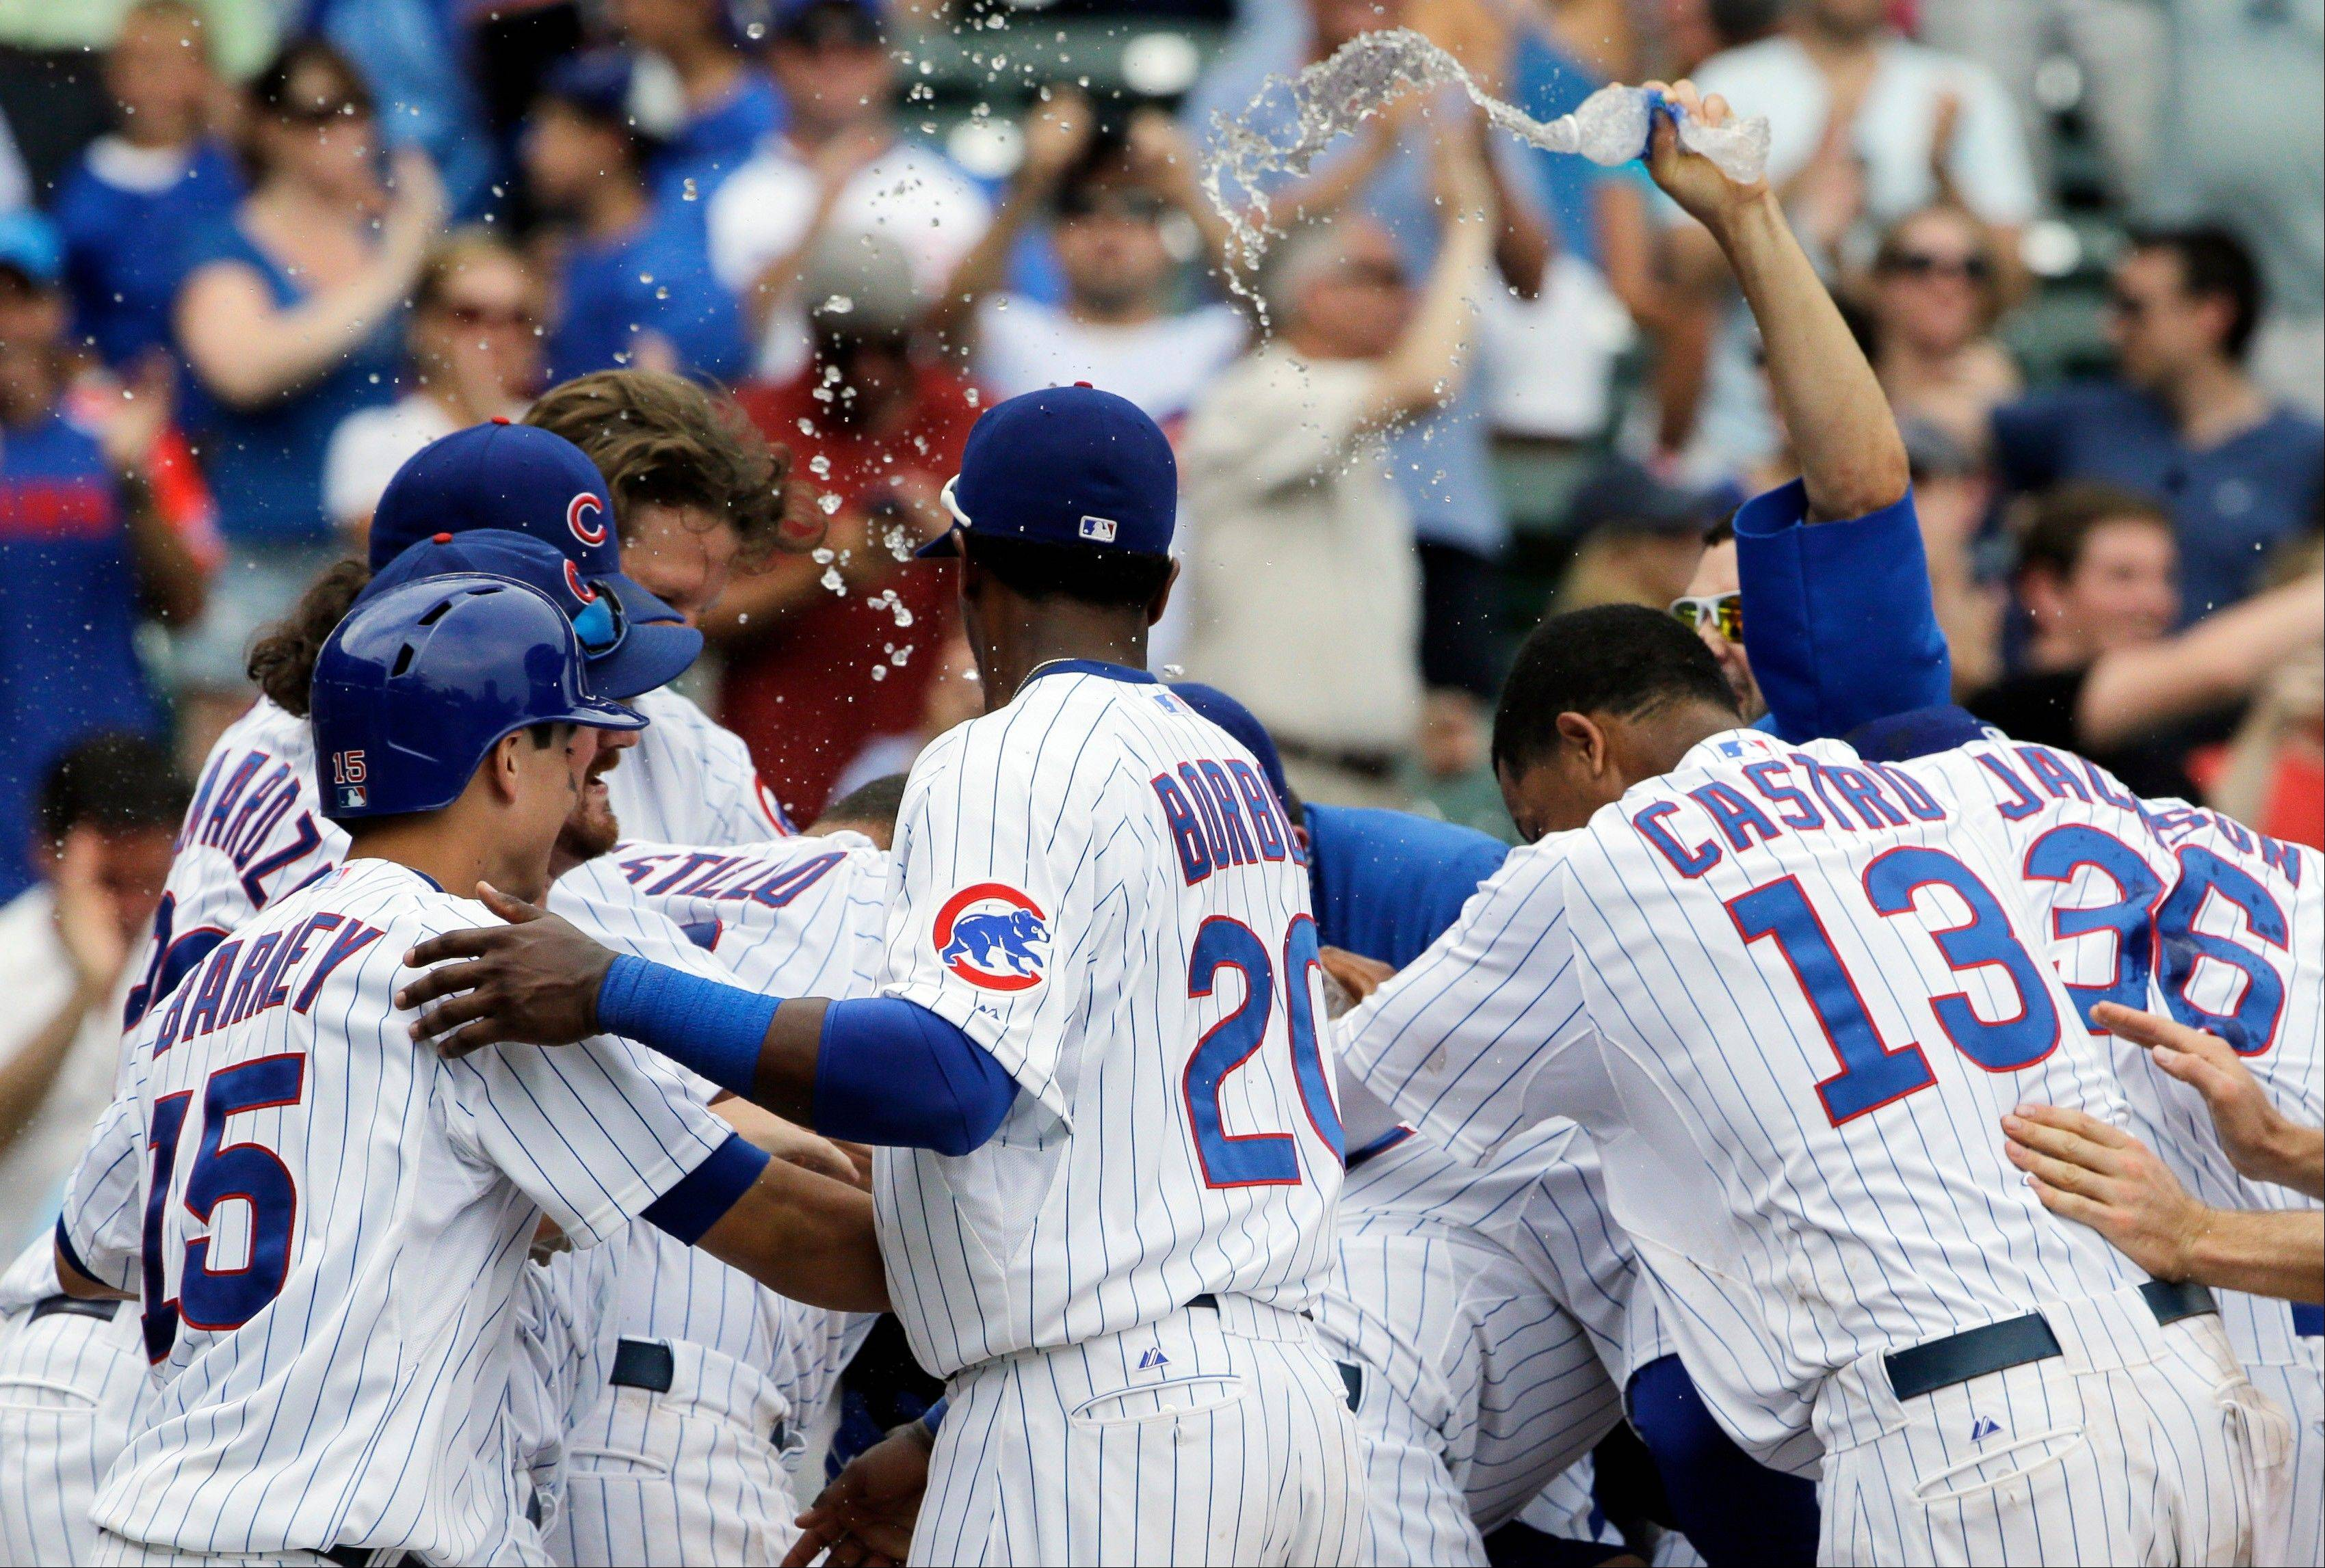 The Cubs celebrate Sunday after Dioner Navarro's sacrifice fly during the 11th inning at Wrigley Field sunk the Pittsburgh Pirates.